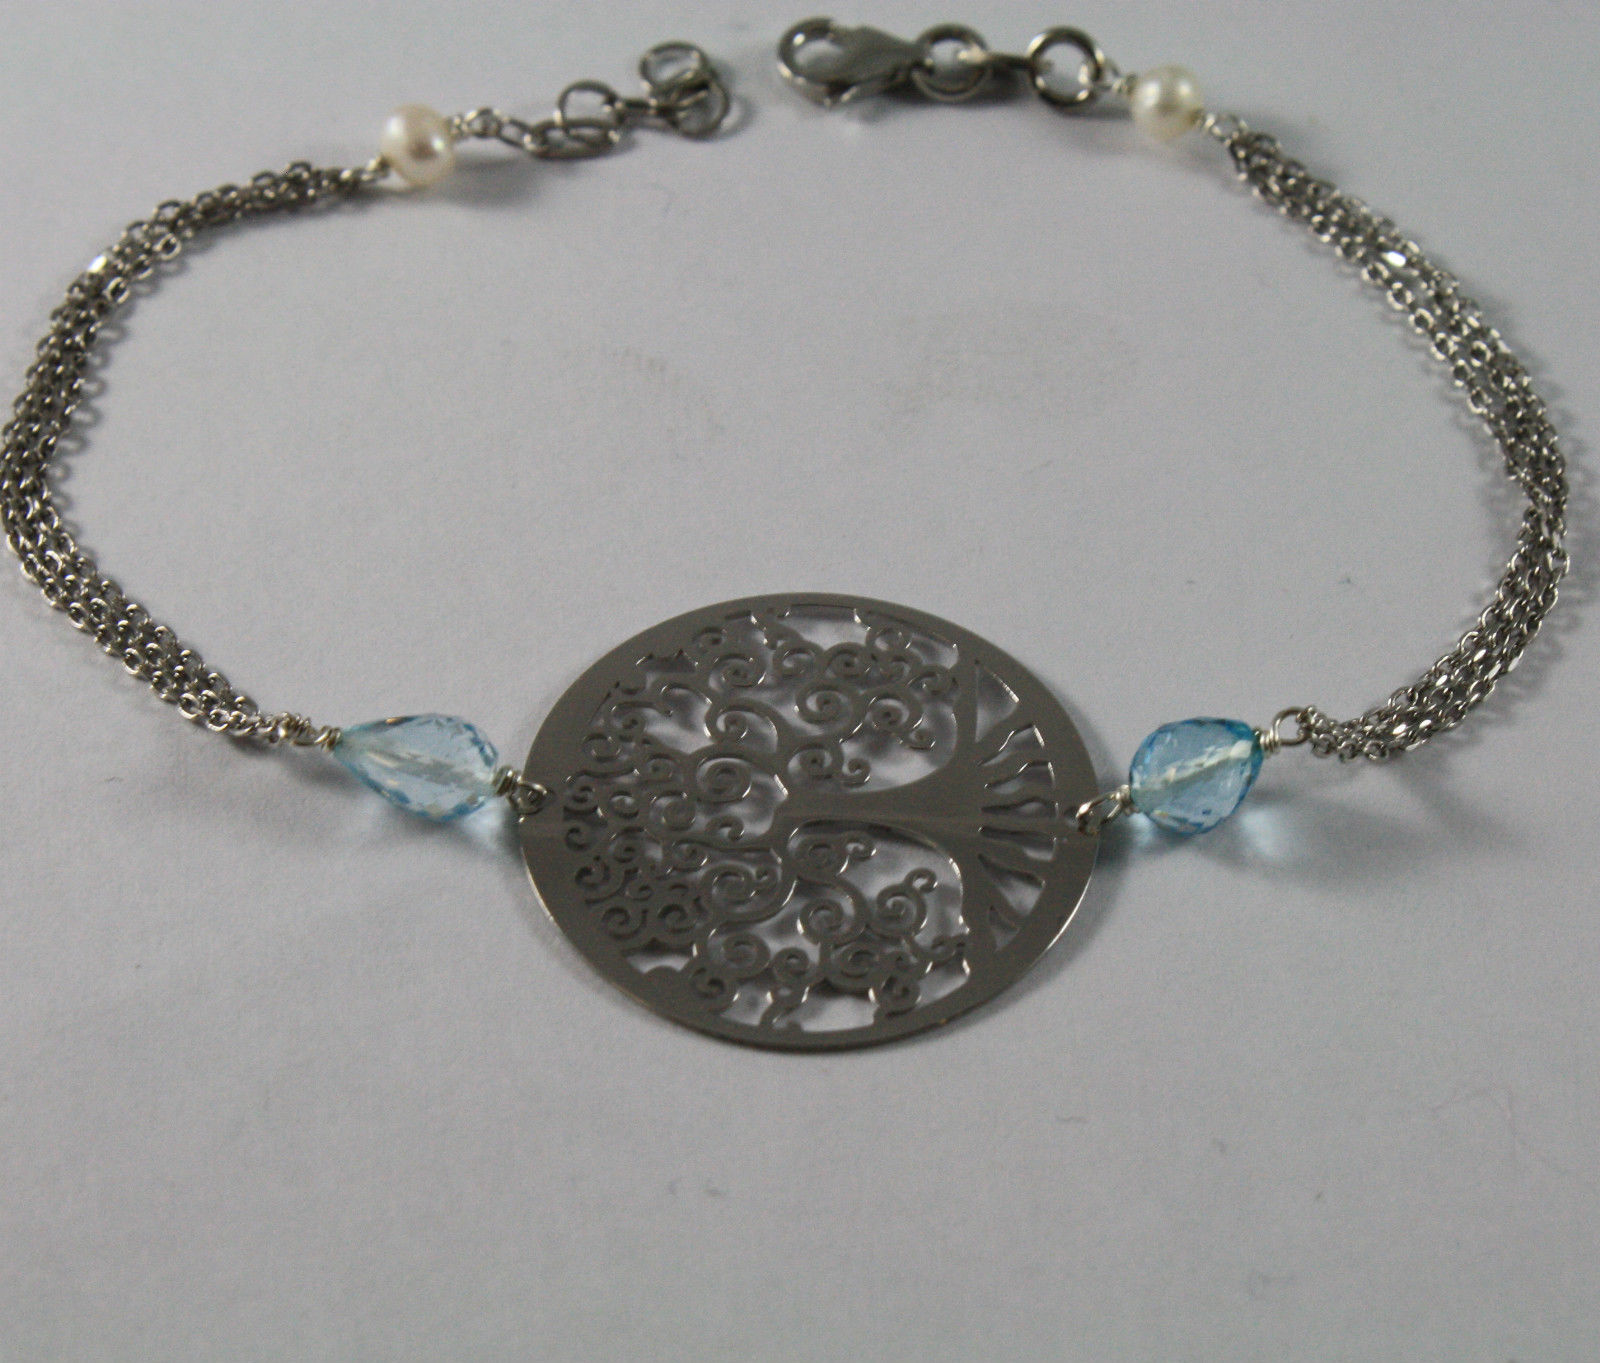 .925 RHODIUM SILVER BRACELET WITH DROP BLUE TOPAZ, FW PEARLS AND TREE OF LIFE